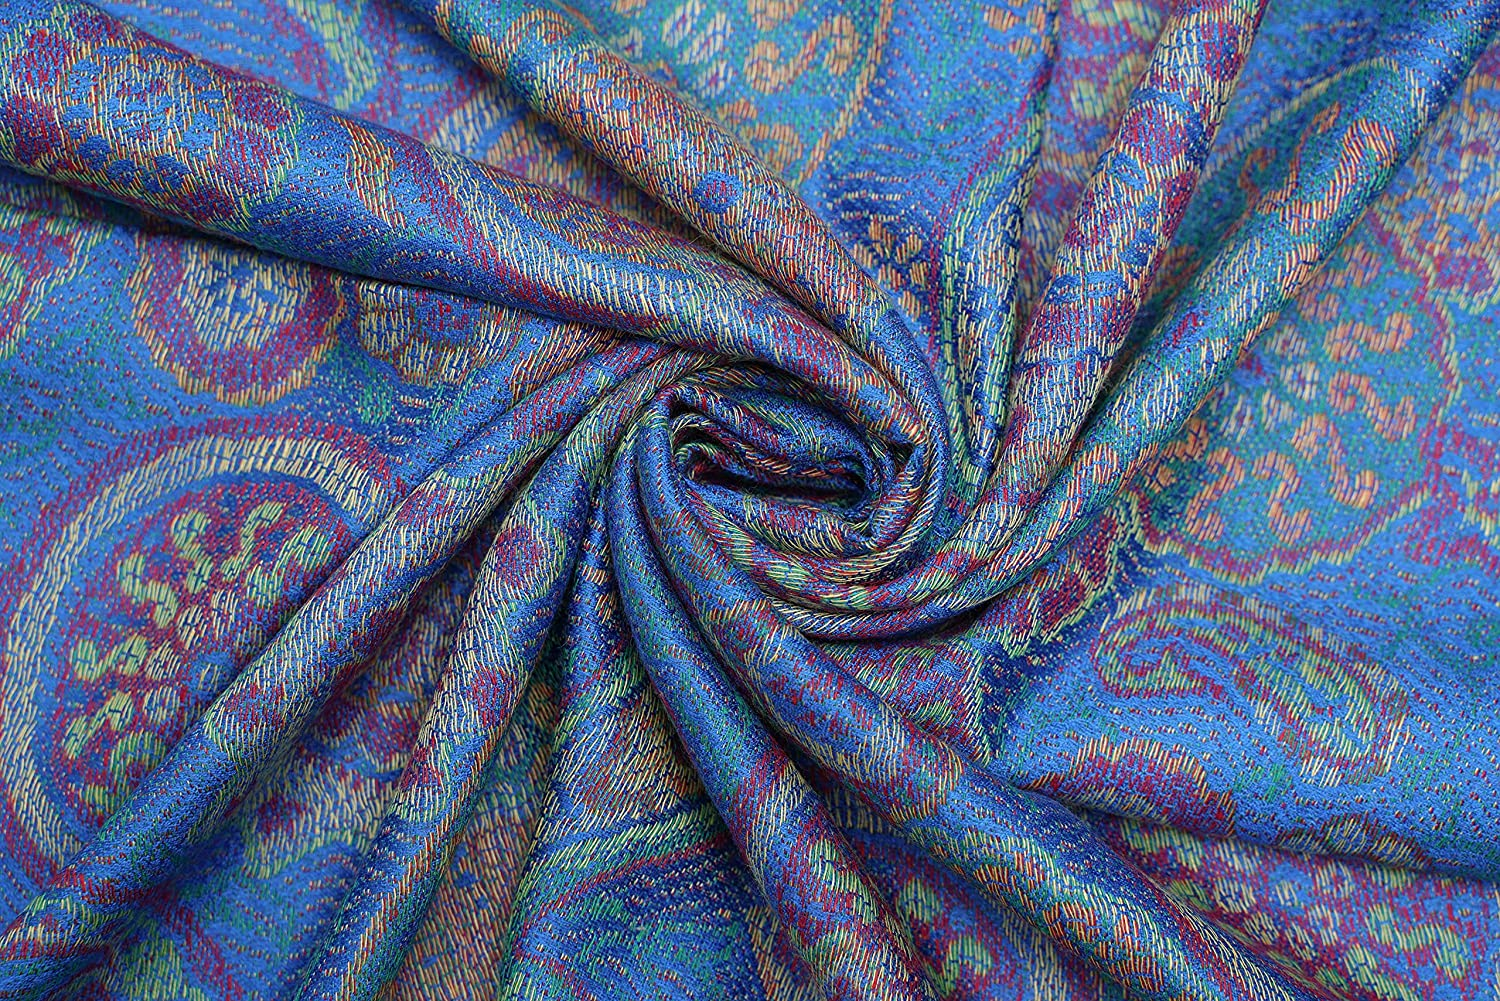 Cashmere Scarves Scarf for Women's Ladies Fashion Tapestry Ethnic Paisley Pattern Blue Tapestry